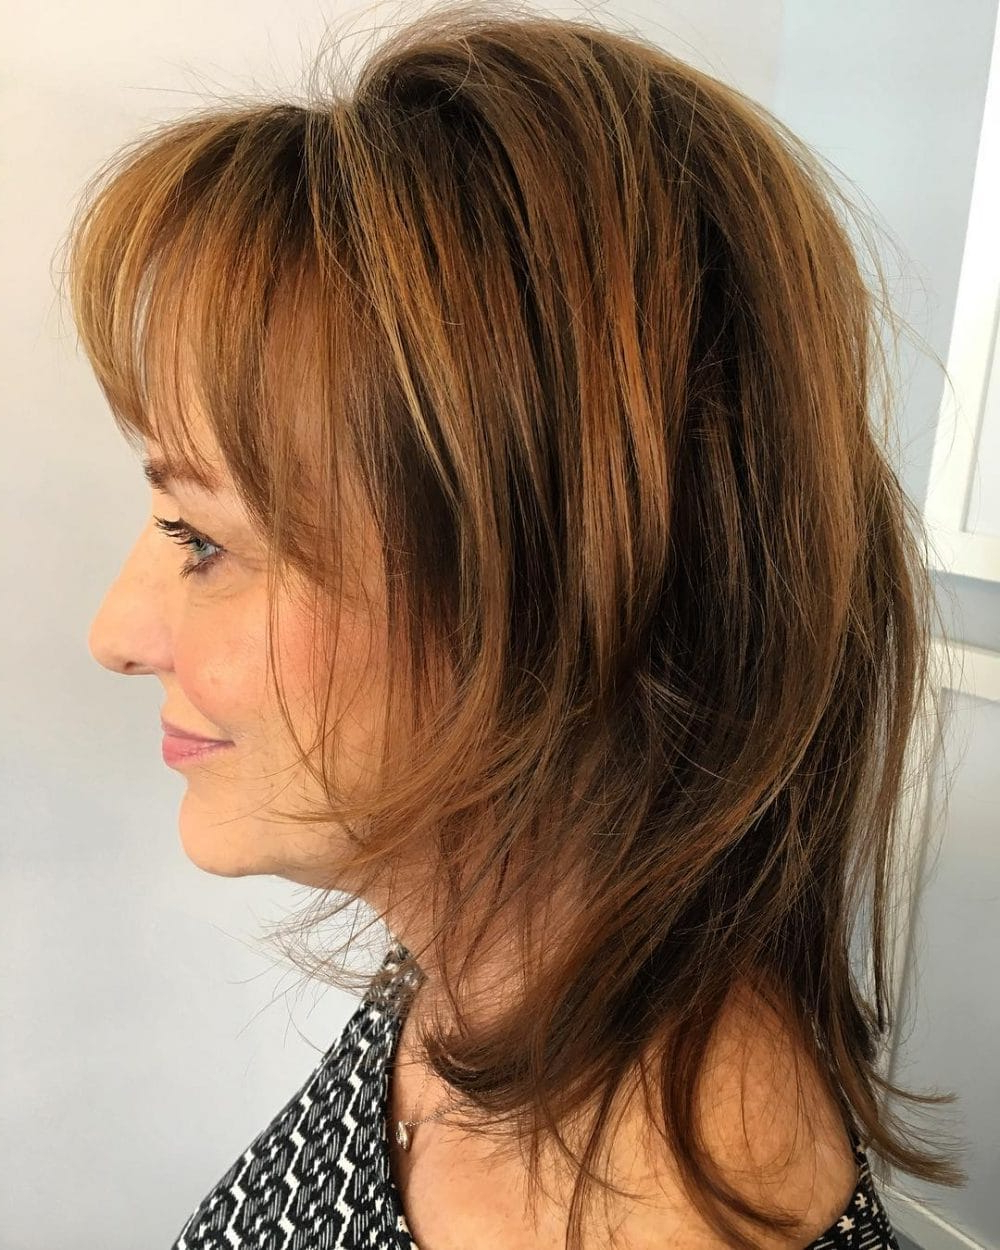 26 Modern Shag Haircuts To Try In 2019 In Jaw Length Shaggy Bob Hairstyles (View 14 of 20)